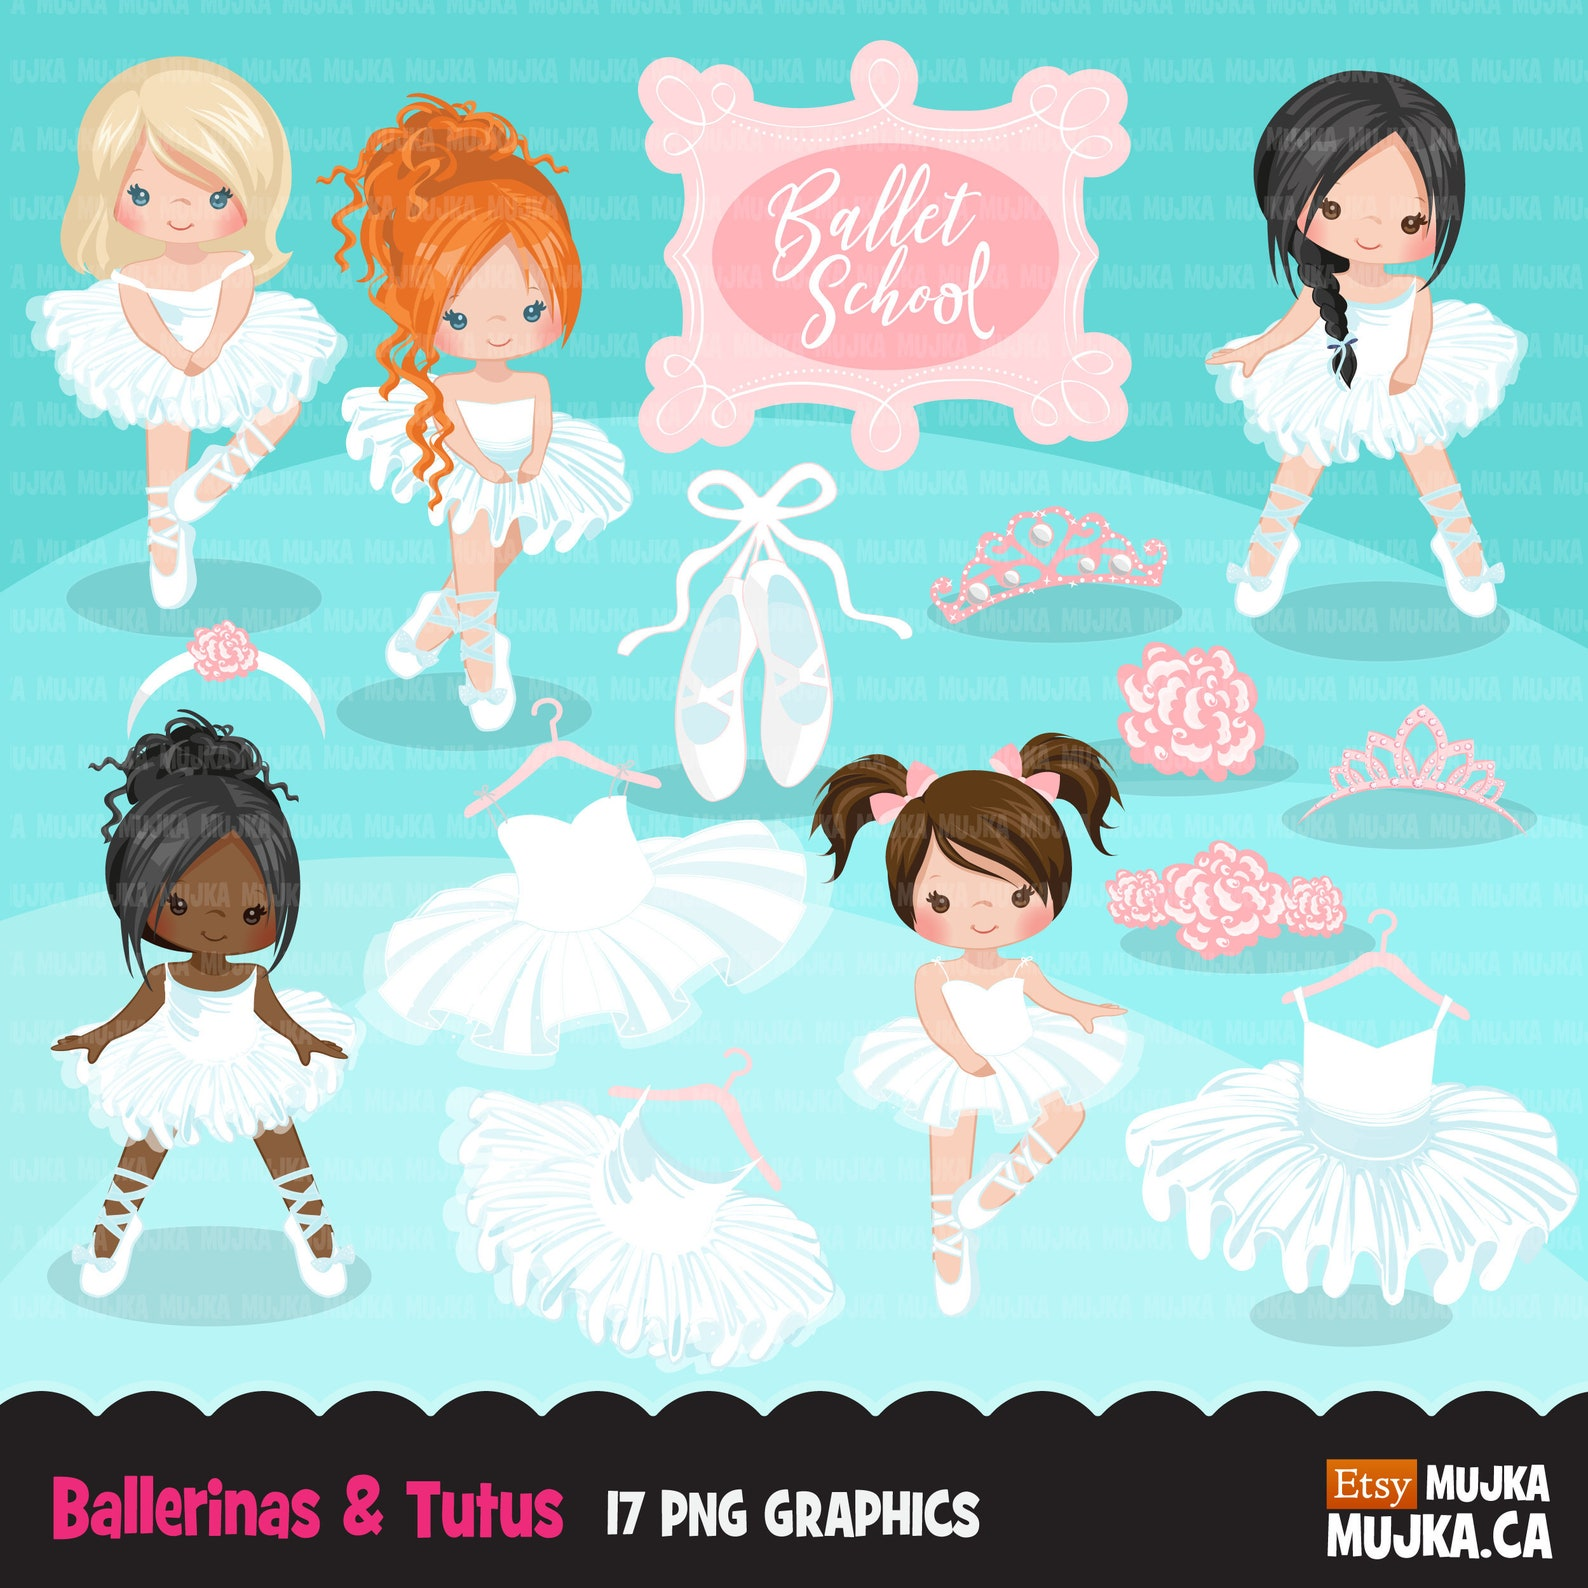 ballerina clipart, chic ballet characters, afro girls, ballet school, shoes, tiara, frame sticker, white tutu, dancers, recital,